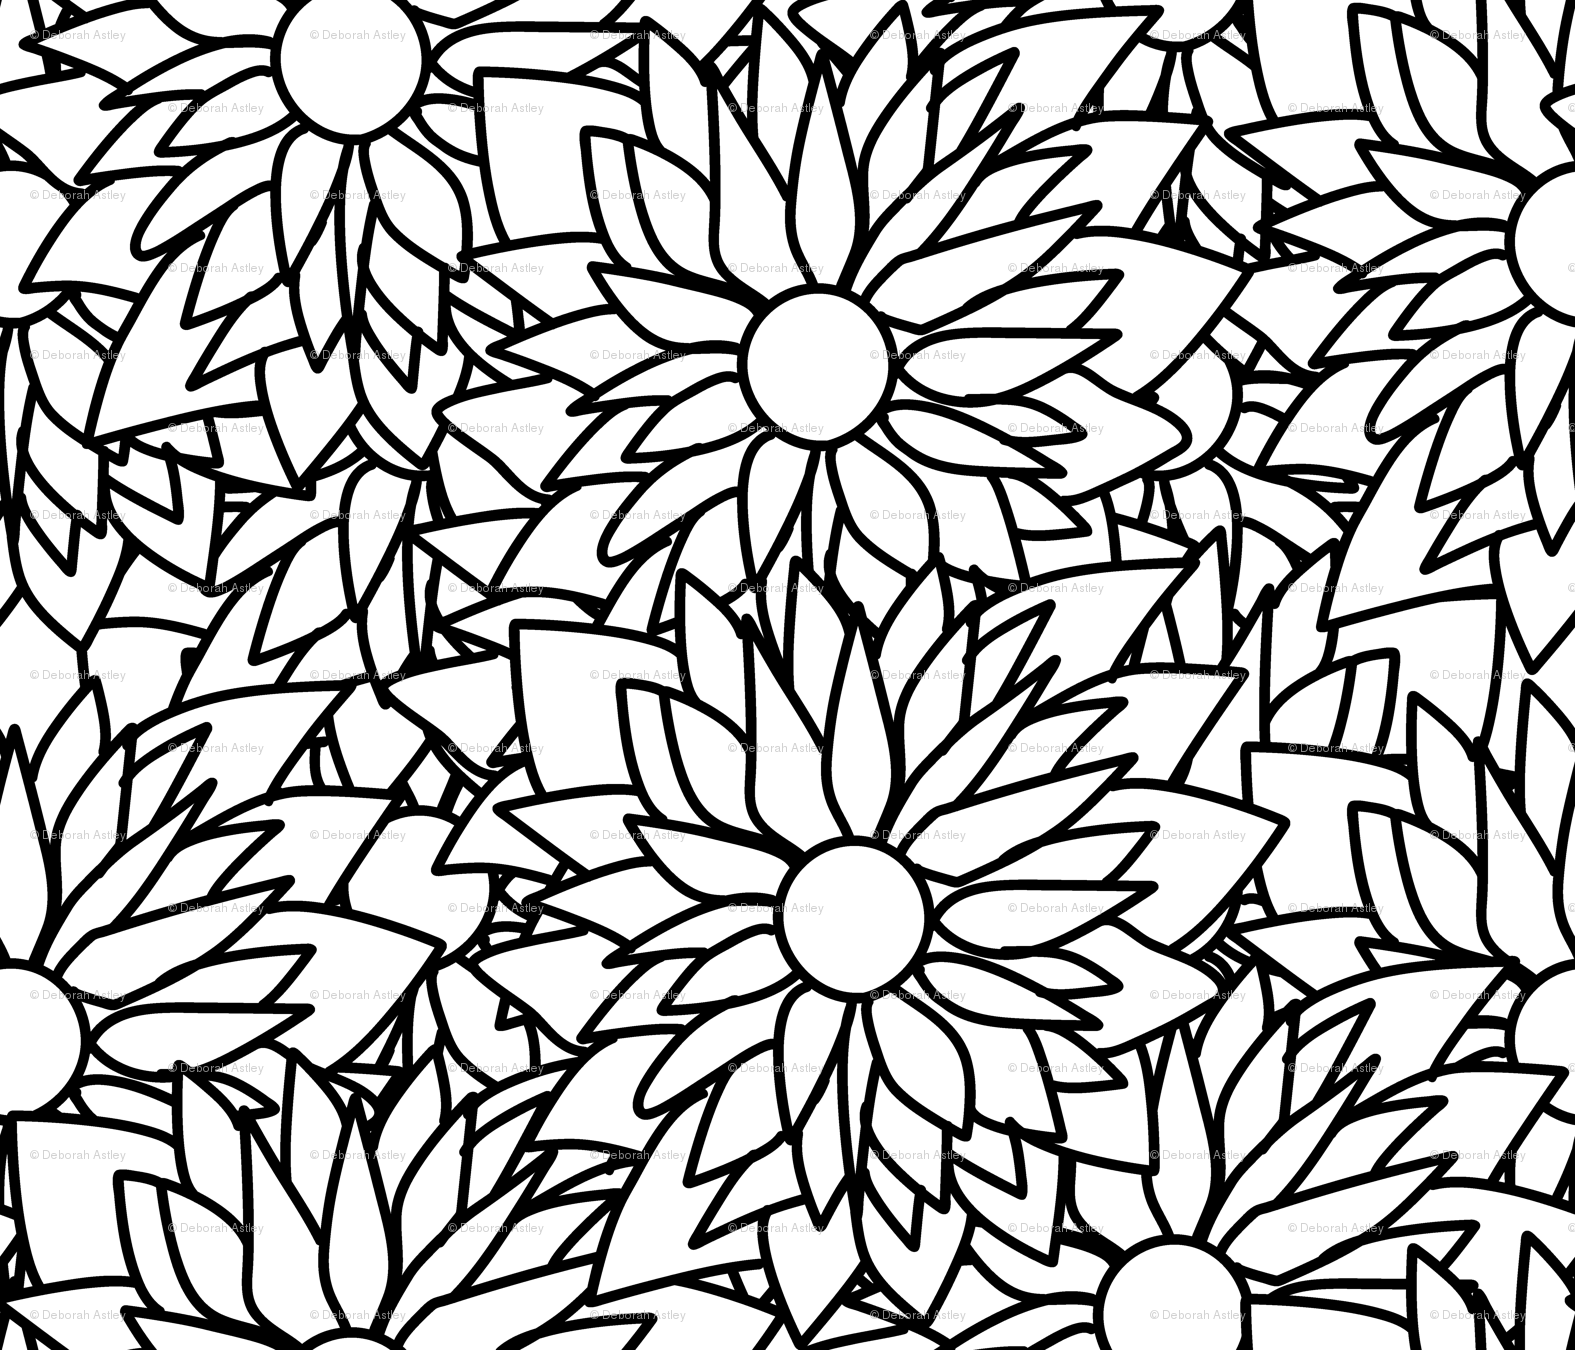 1575x1350 a crowd of shaggy daisies wallpaper